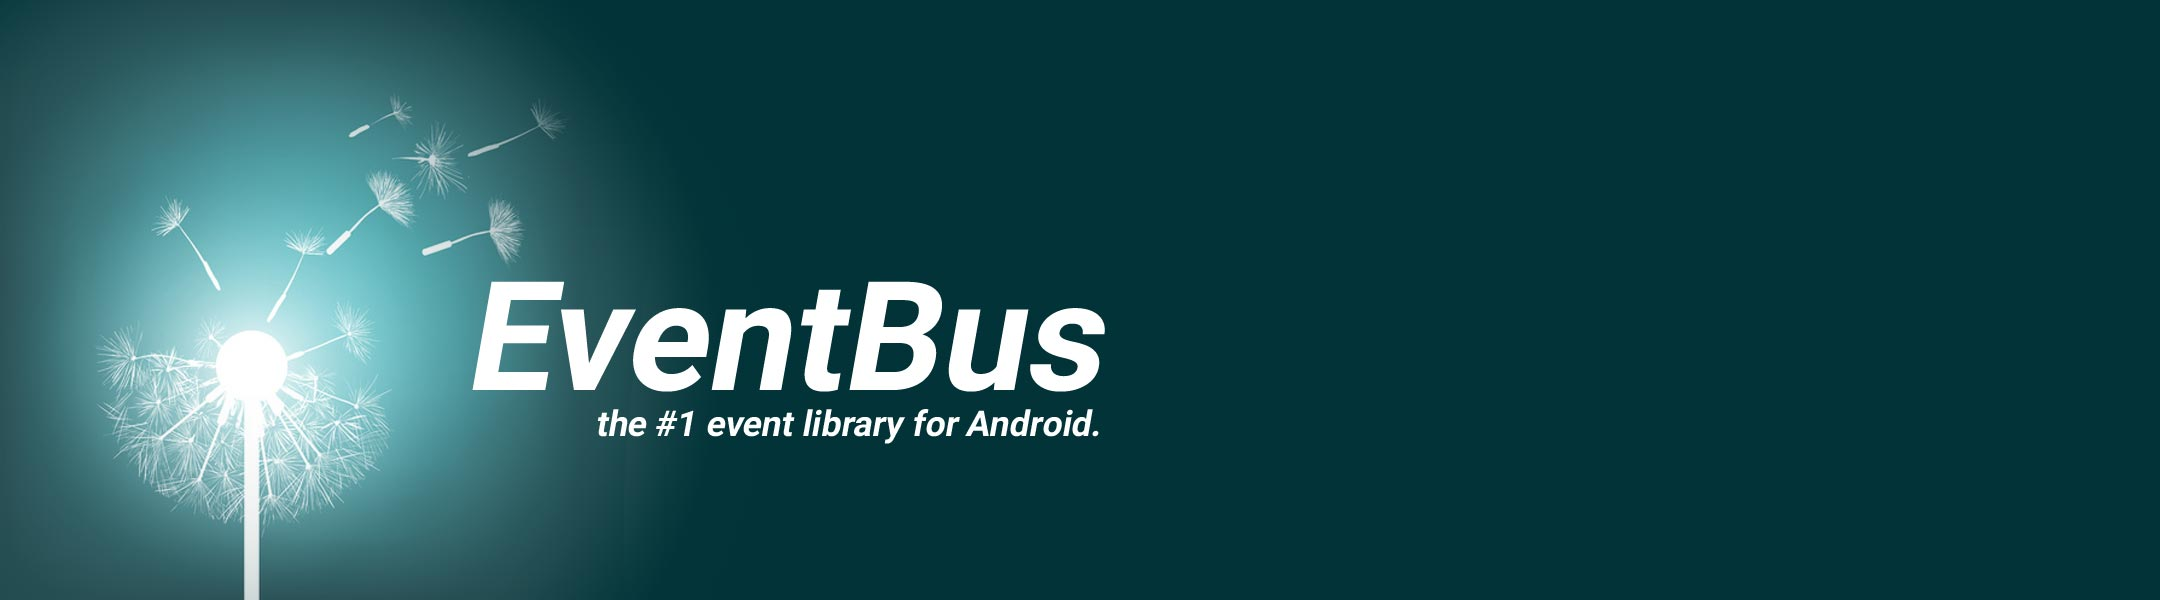 Events for Android - EventBus